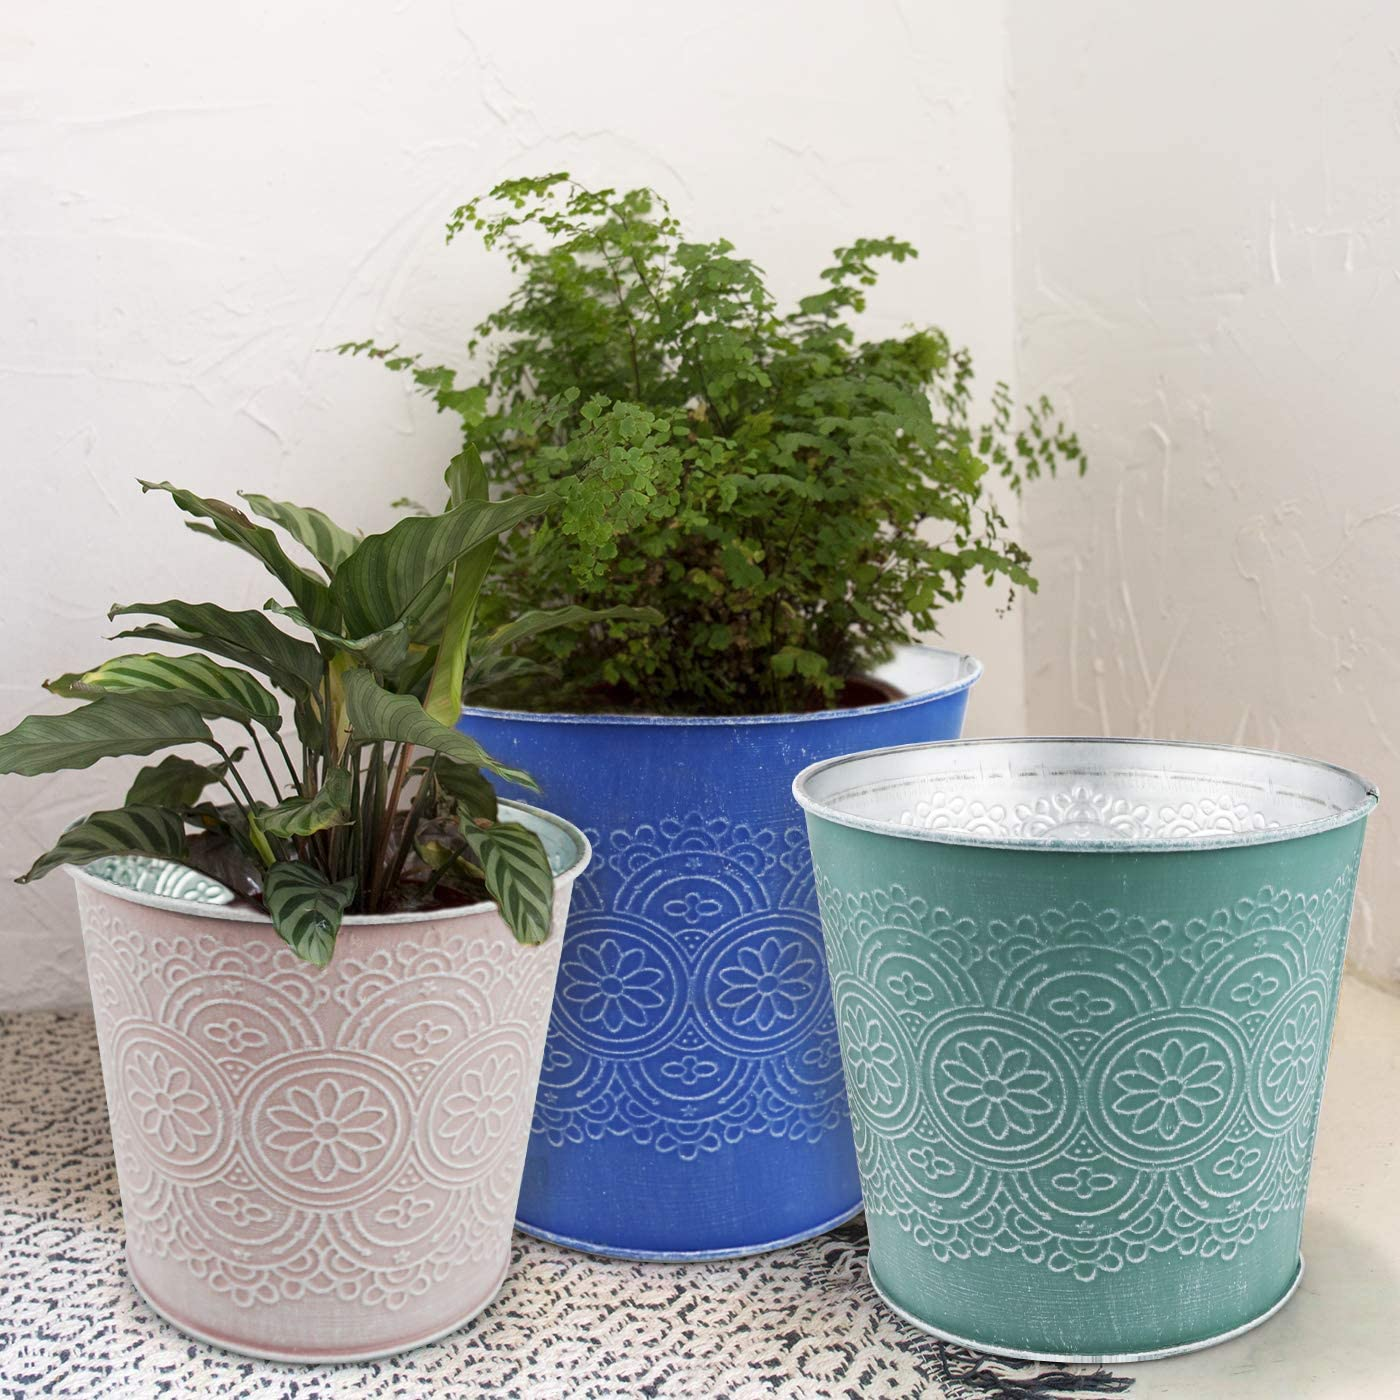 Plant Pots for Plants - Set of 6 Indoor and Outdoor Galvanized Metal Planter Flower Pot for Office Decor and Patio Garden